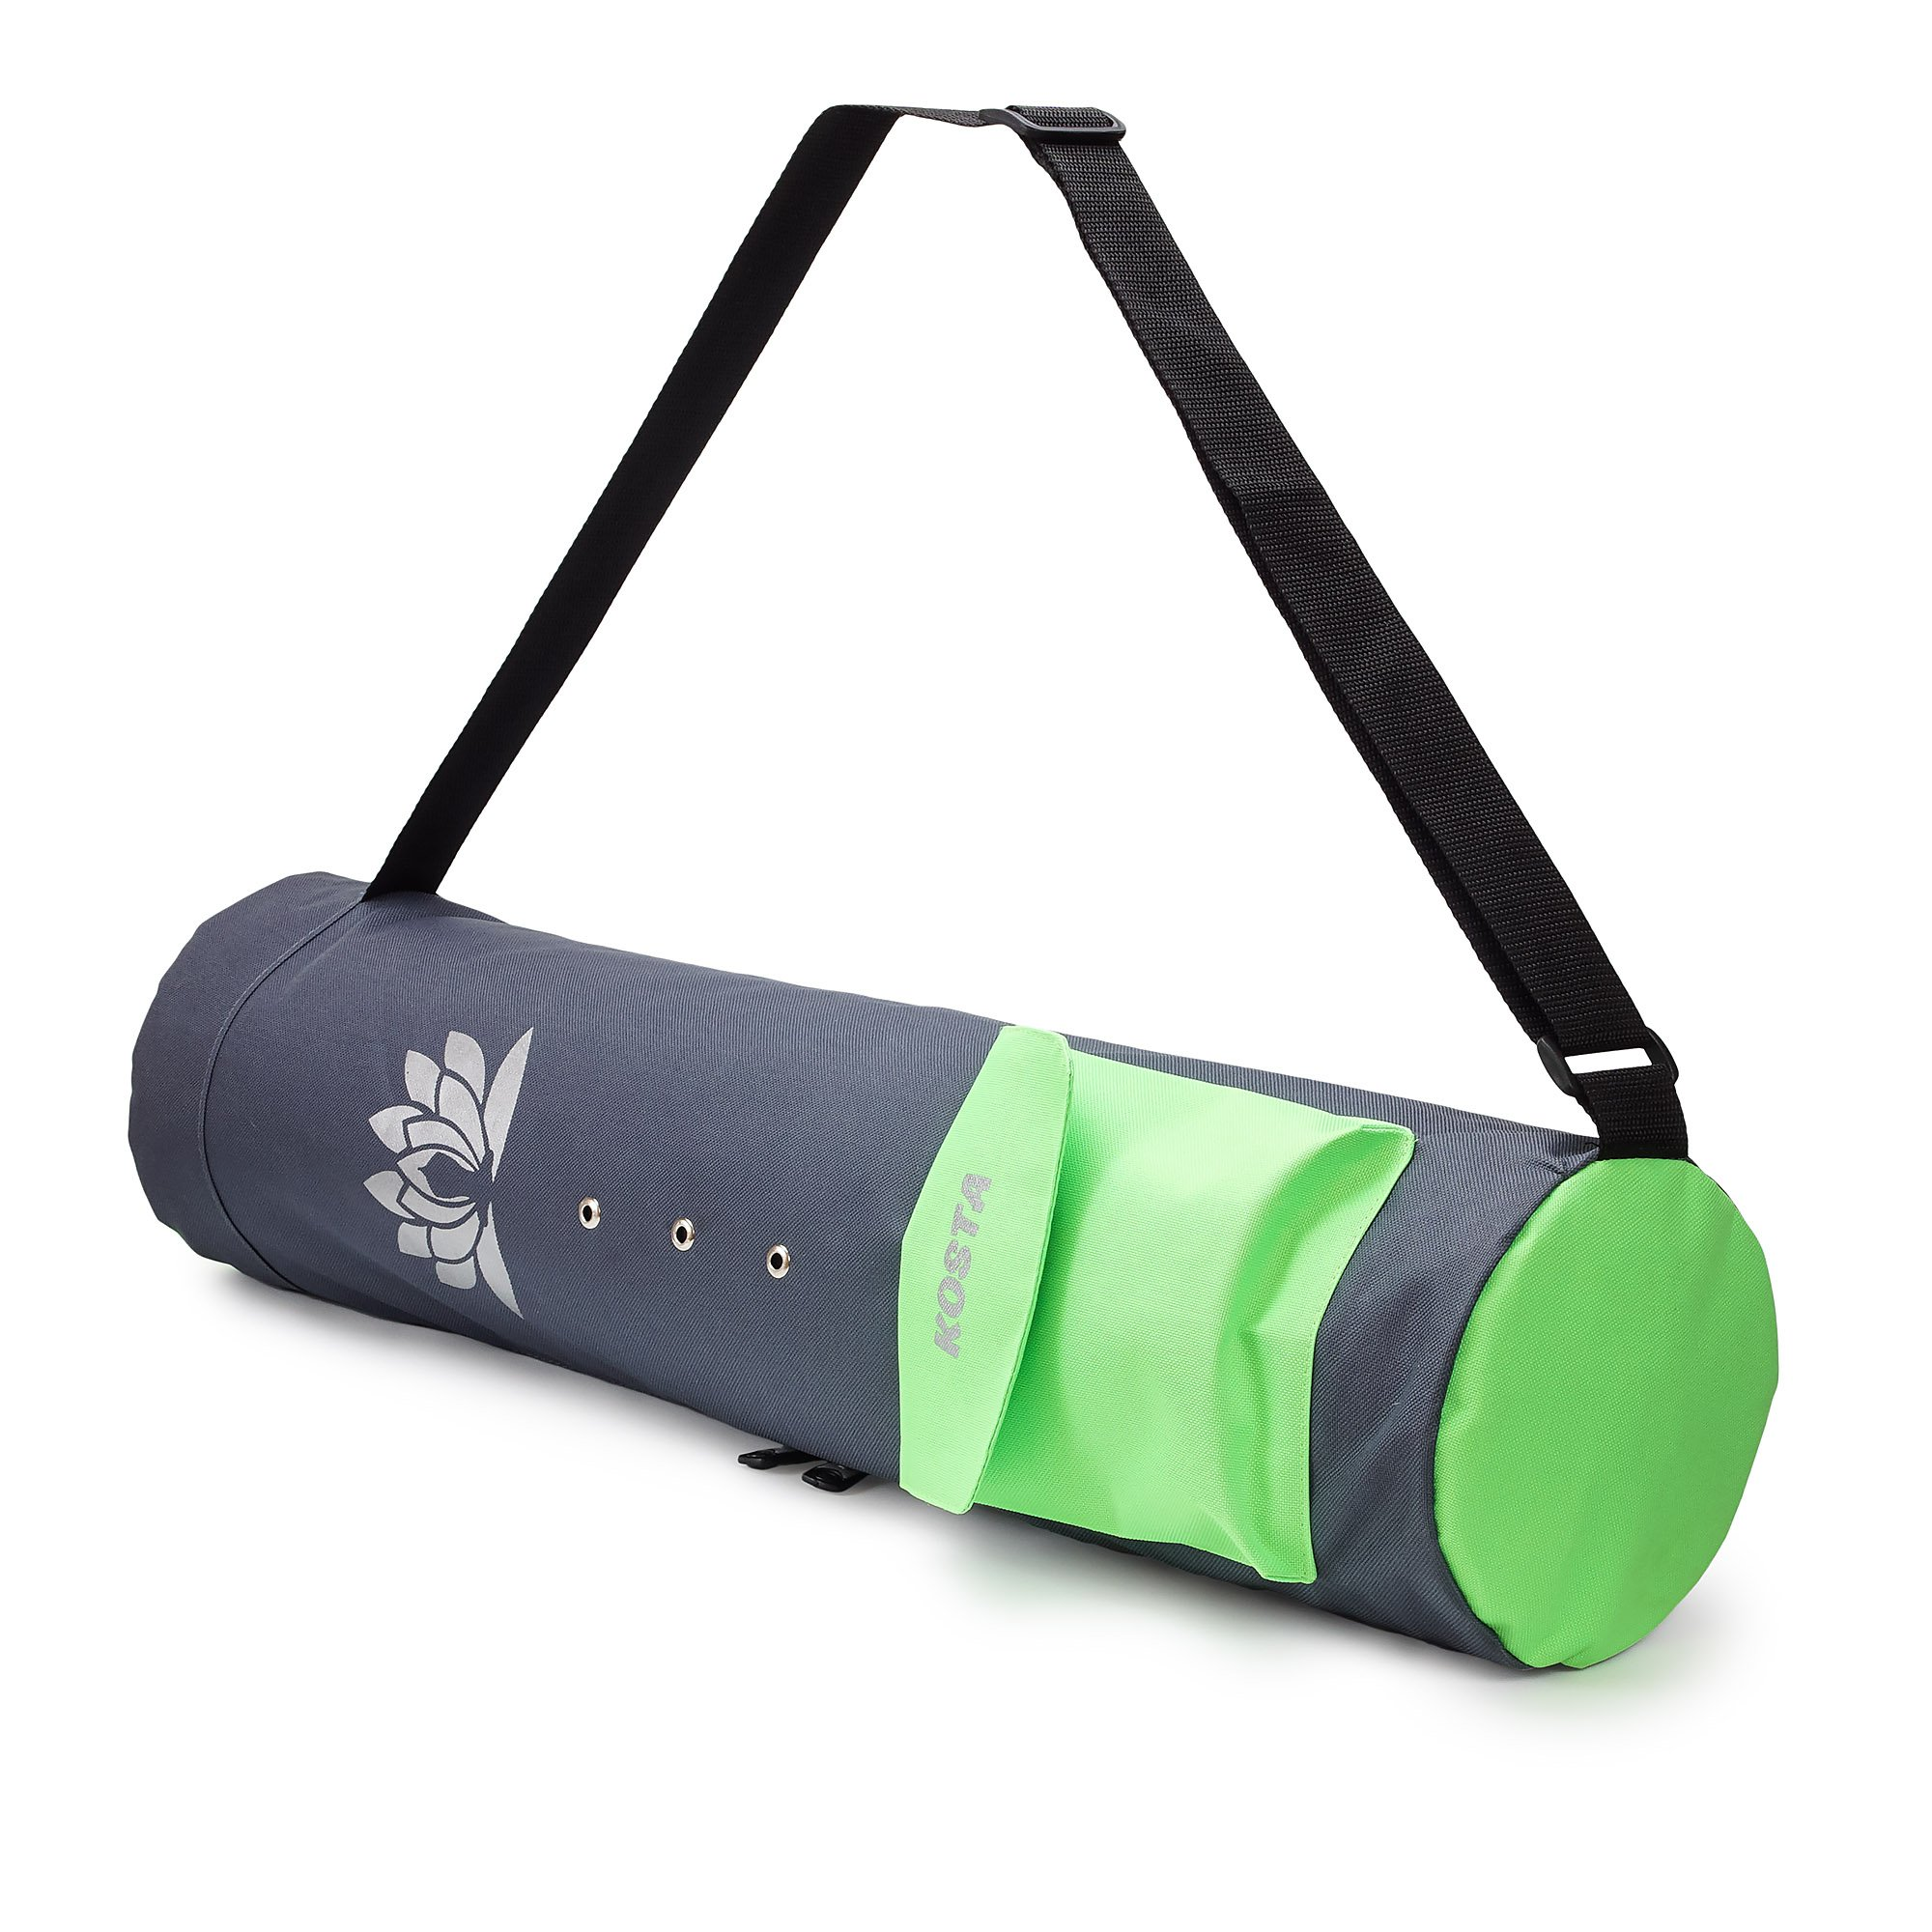 KOSTA Yoga Mat Bag Carrier for Men and Women - Yoga Bag Holder Stylish and Convenient for Any Size Mat Grey and Green